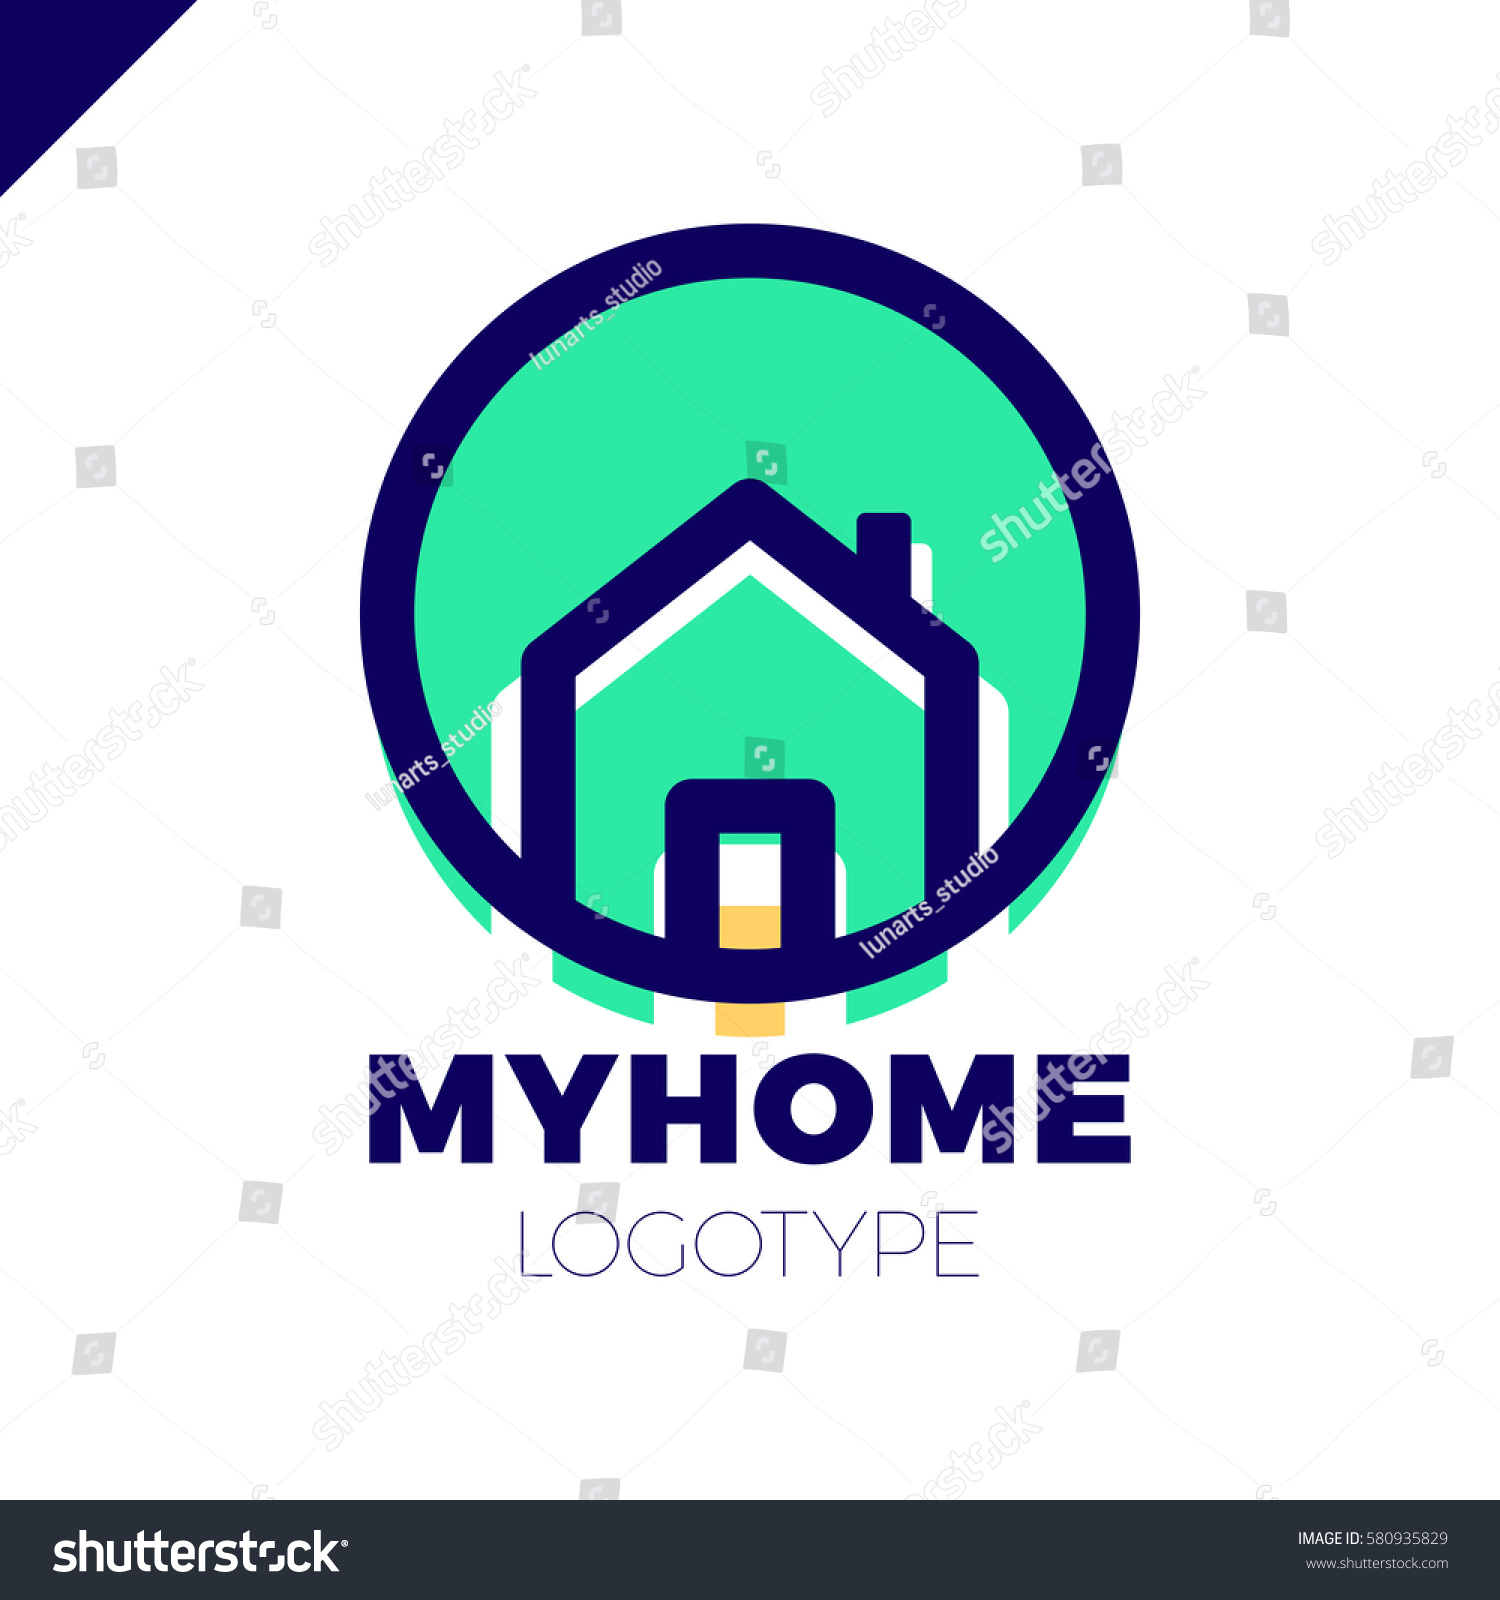 Template Logo For Real Estate Agency Or Cottage Town Elite Class Logotype In